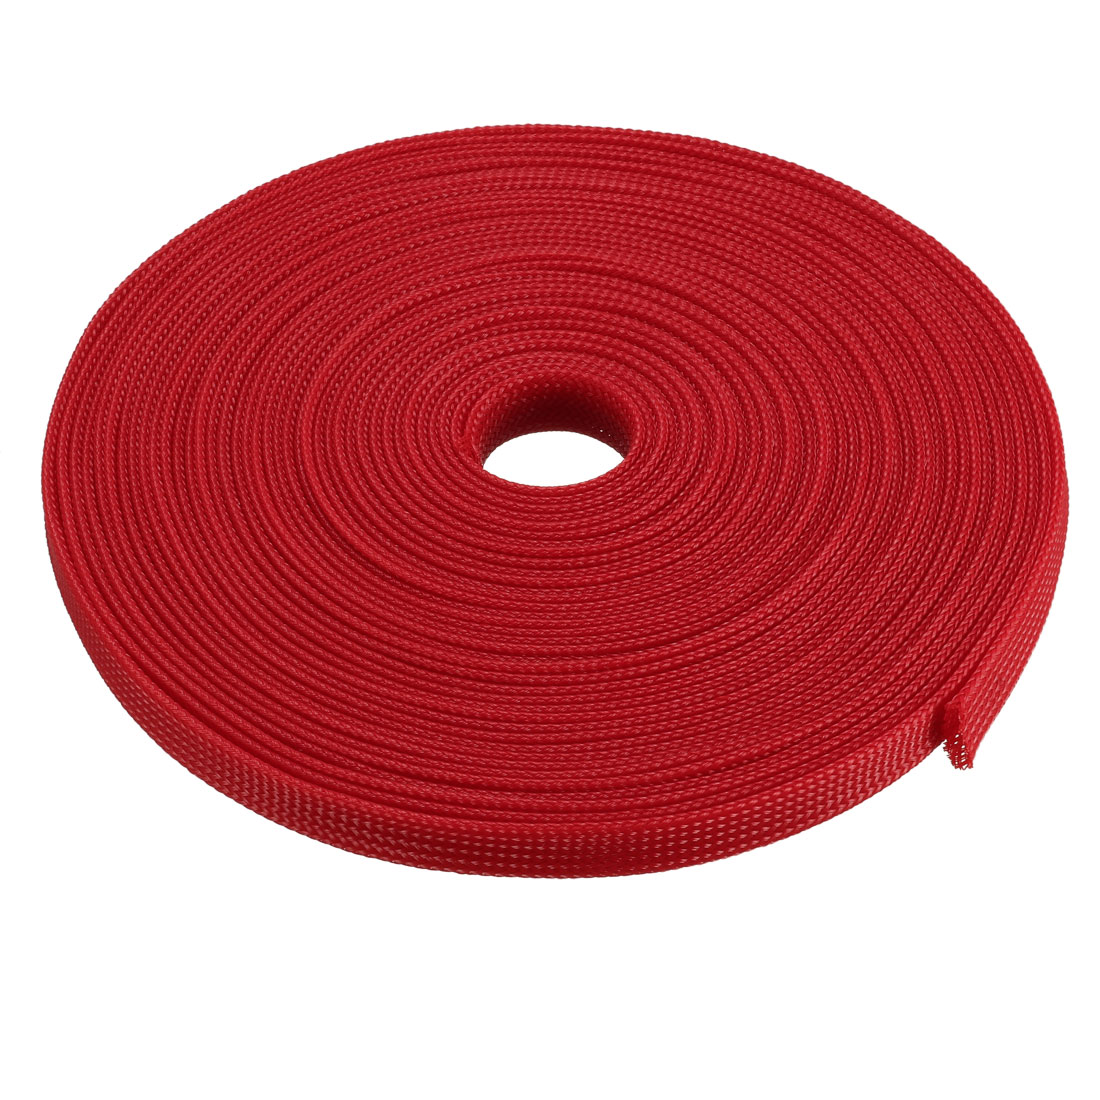 14mm Dia Tight Braided PET Expandable Sleeving Cable Wire Wrap Sheath Red 10M